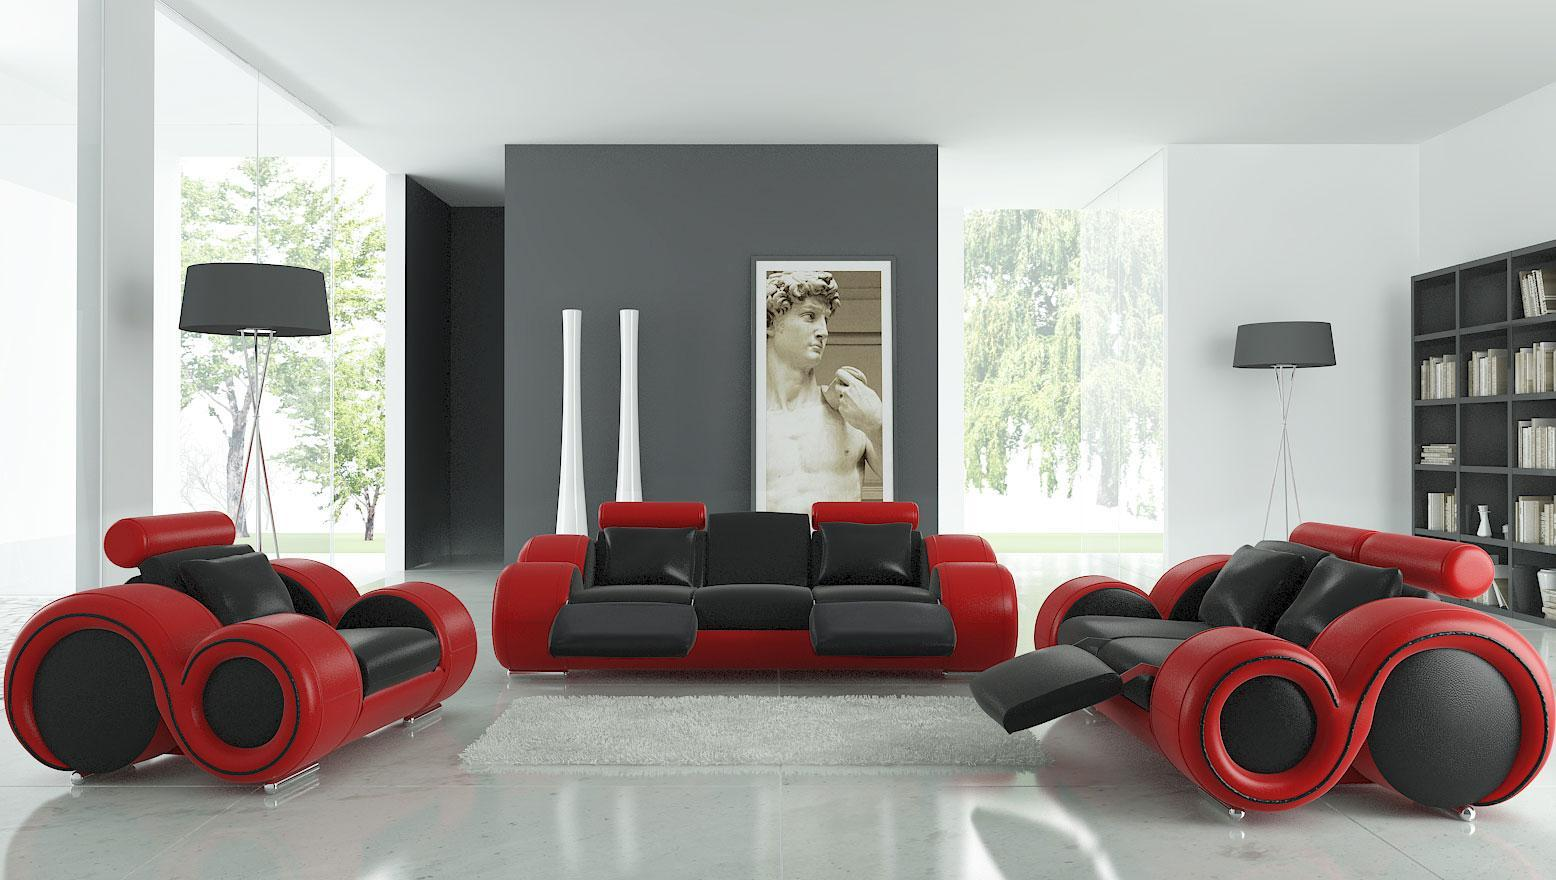 Leather recliner sofa and cheap leather sofa 3 2 1. Leather recliner sofa and cheap leather sofa 3 2 1  View Leather